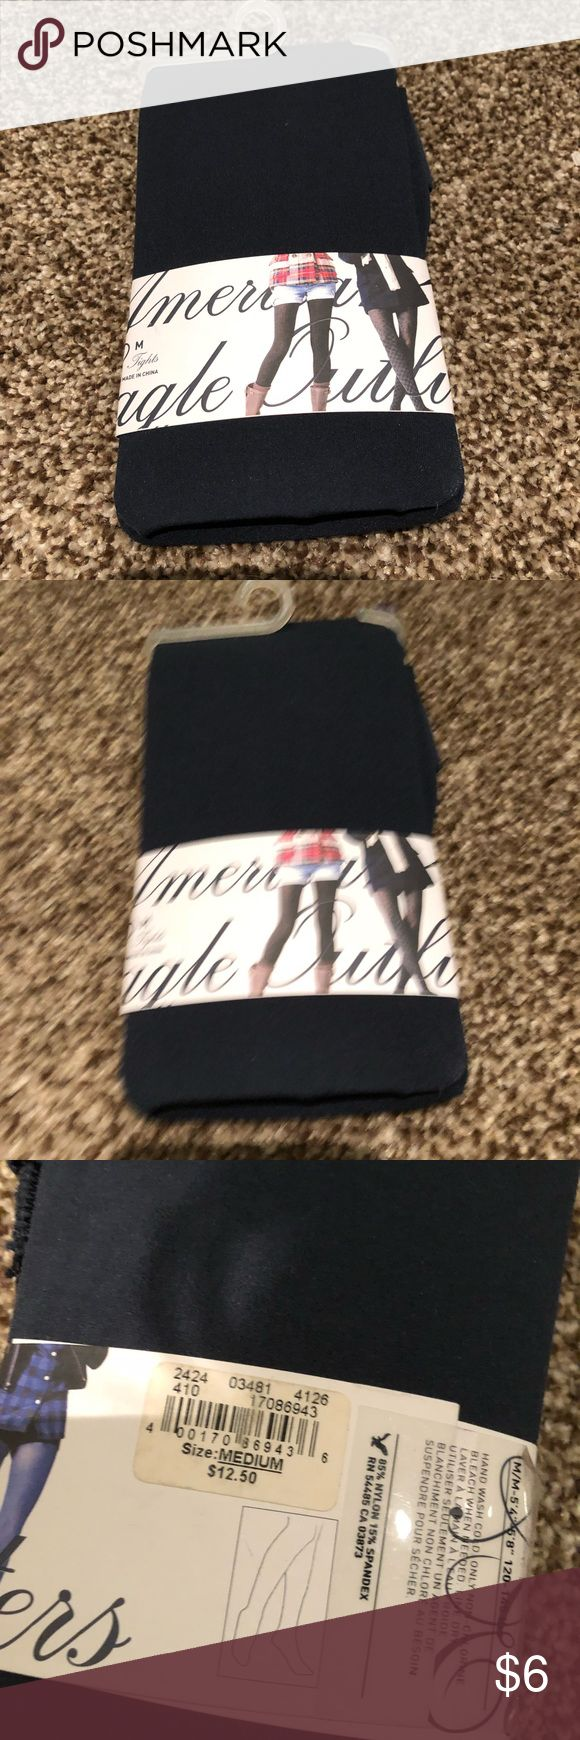 Navy tights Navy American eagle tights American Eagle Outfitters Accessories Hosiery & Socks